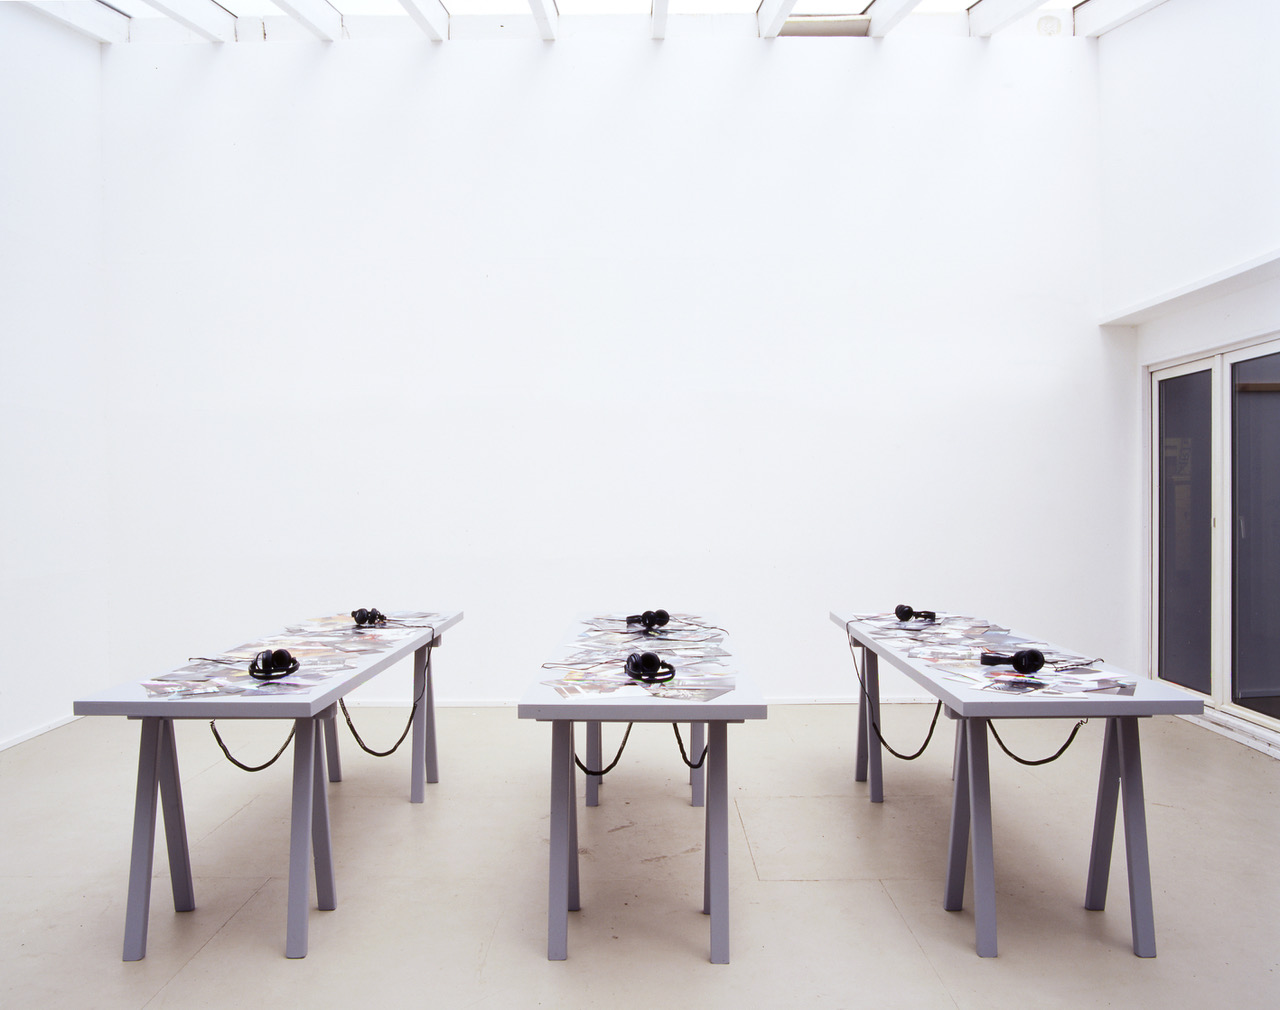 Photograph of the three tables with sets of headphones on them at the PLOTS installation.